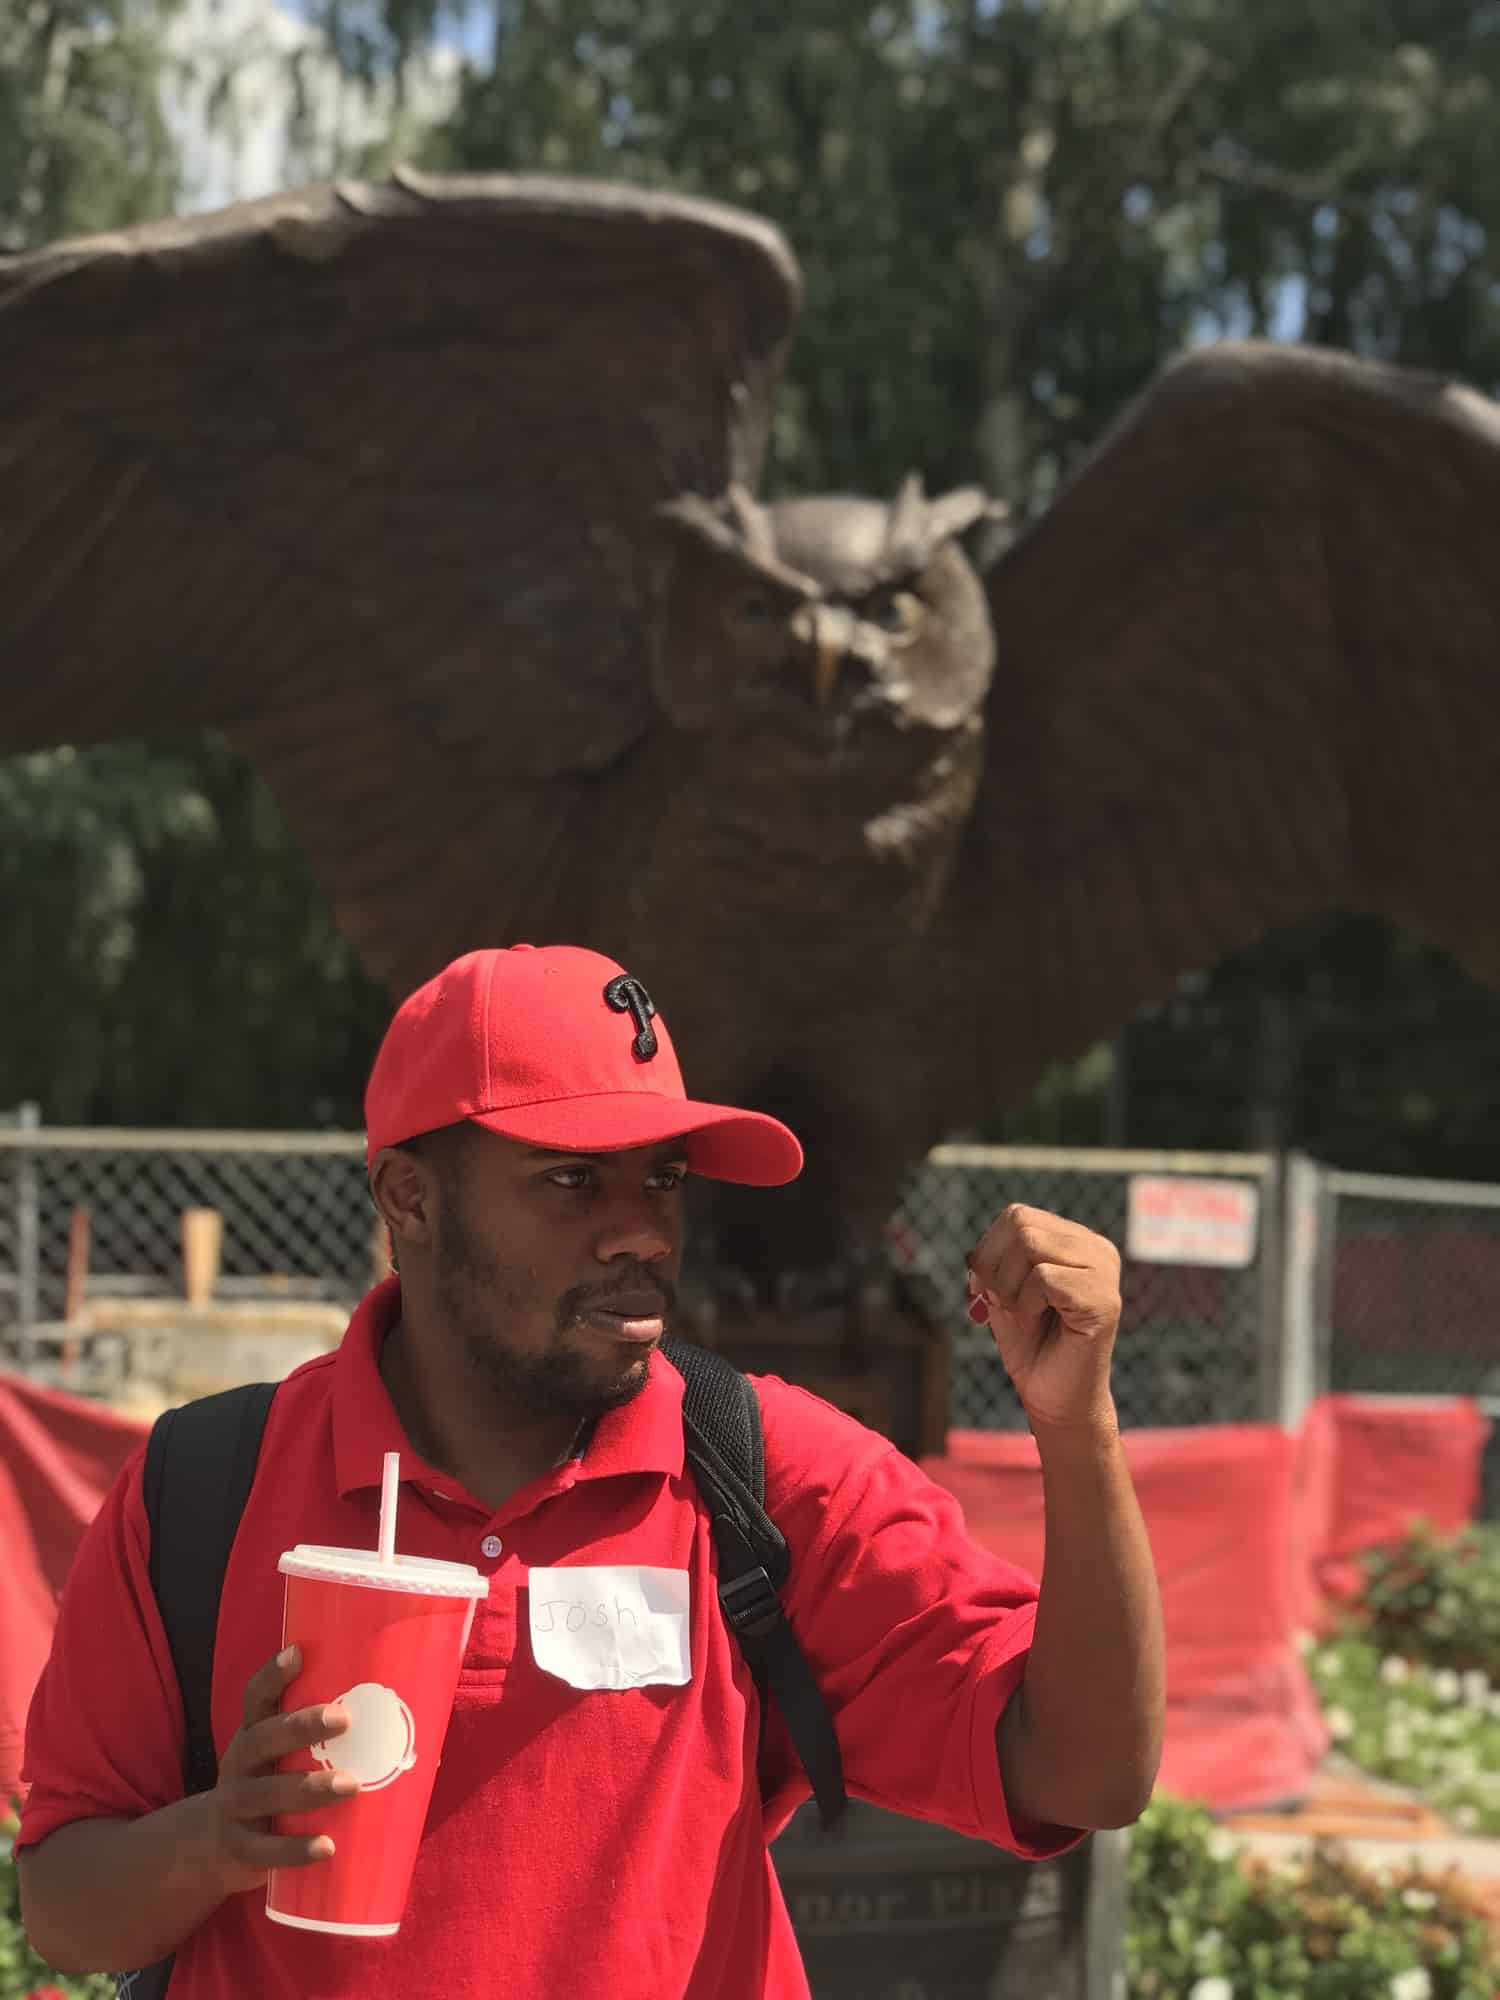 Image of a young man standing in front of the Temple Owl statue wearing red.